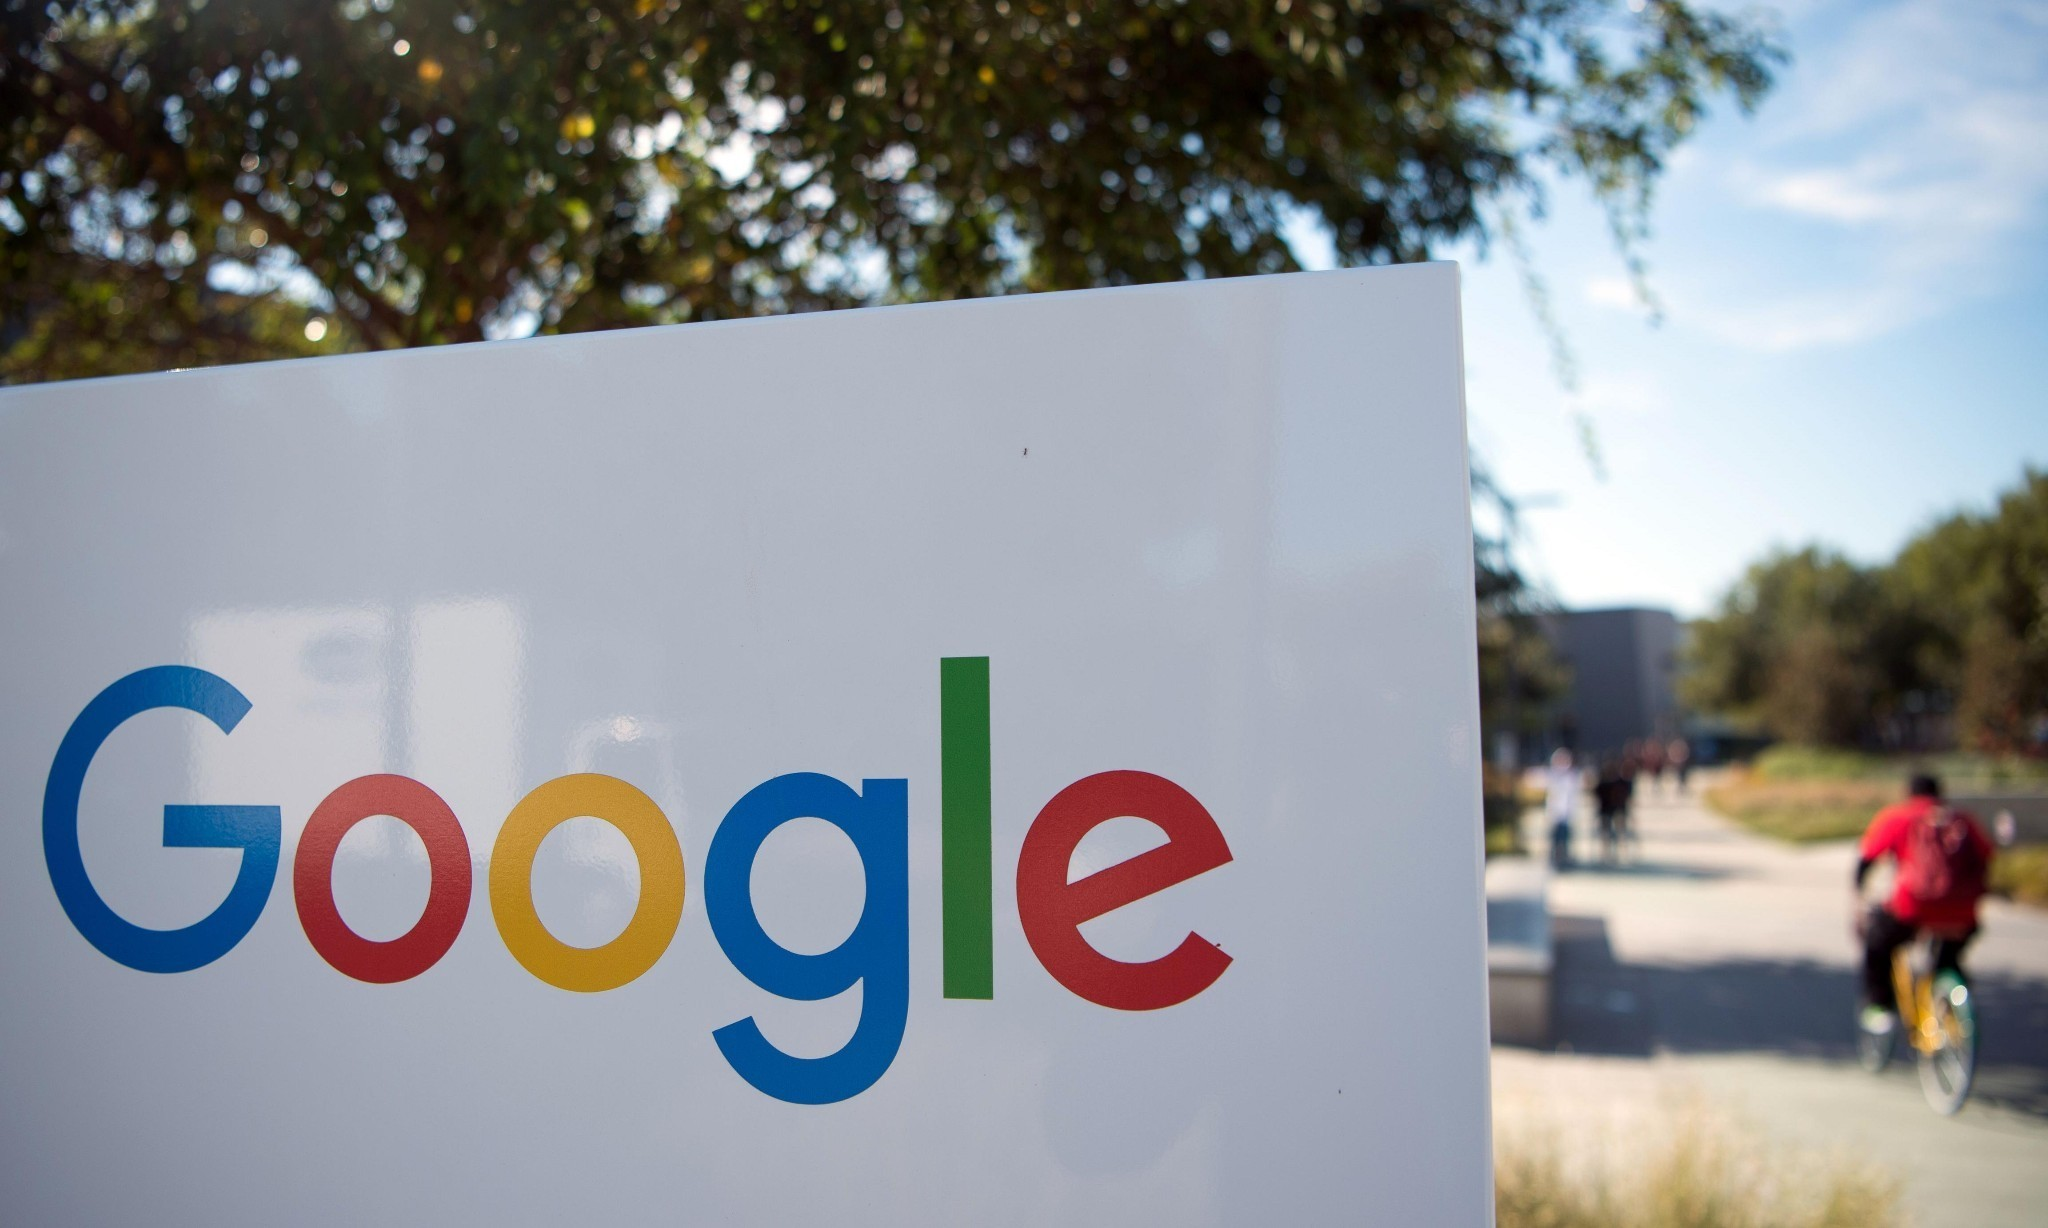 Teenagers think Google is cool, study by Google finds